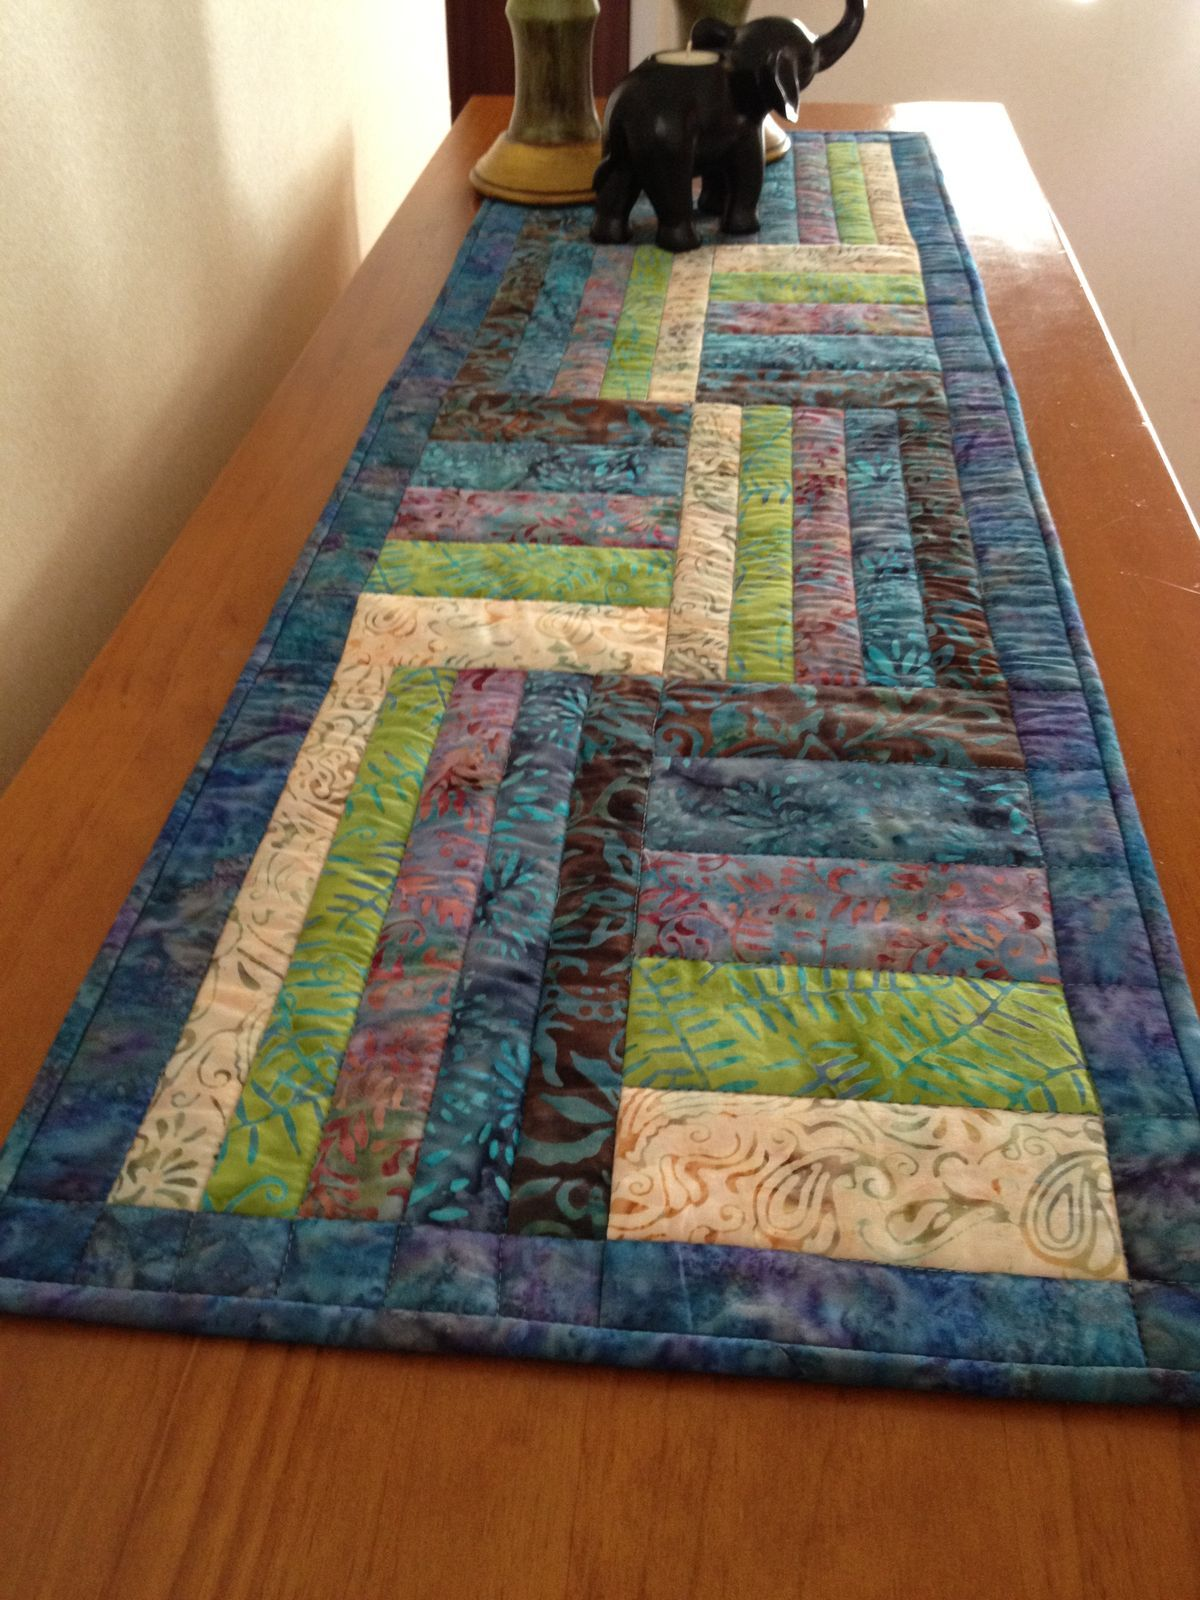 Pinterest Quilting Table Runners : 4b331466c2ef1f993a89a19496f6f616.jpg 1,200x1,600 pixels Table toppers Pinterest Quilt ...